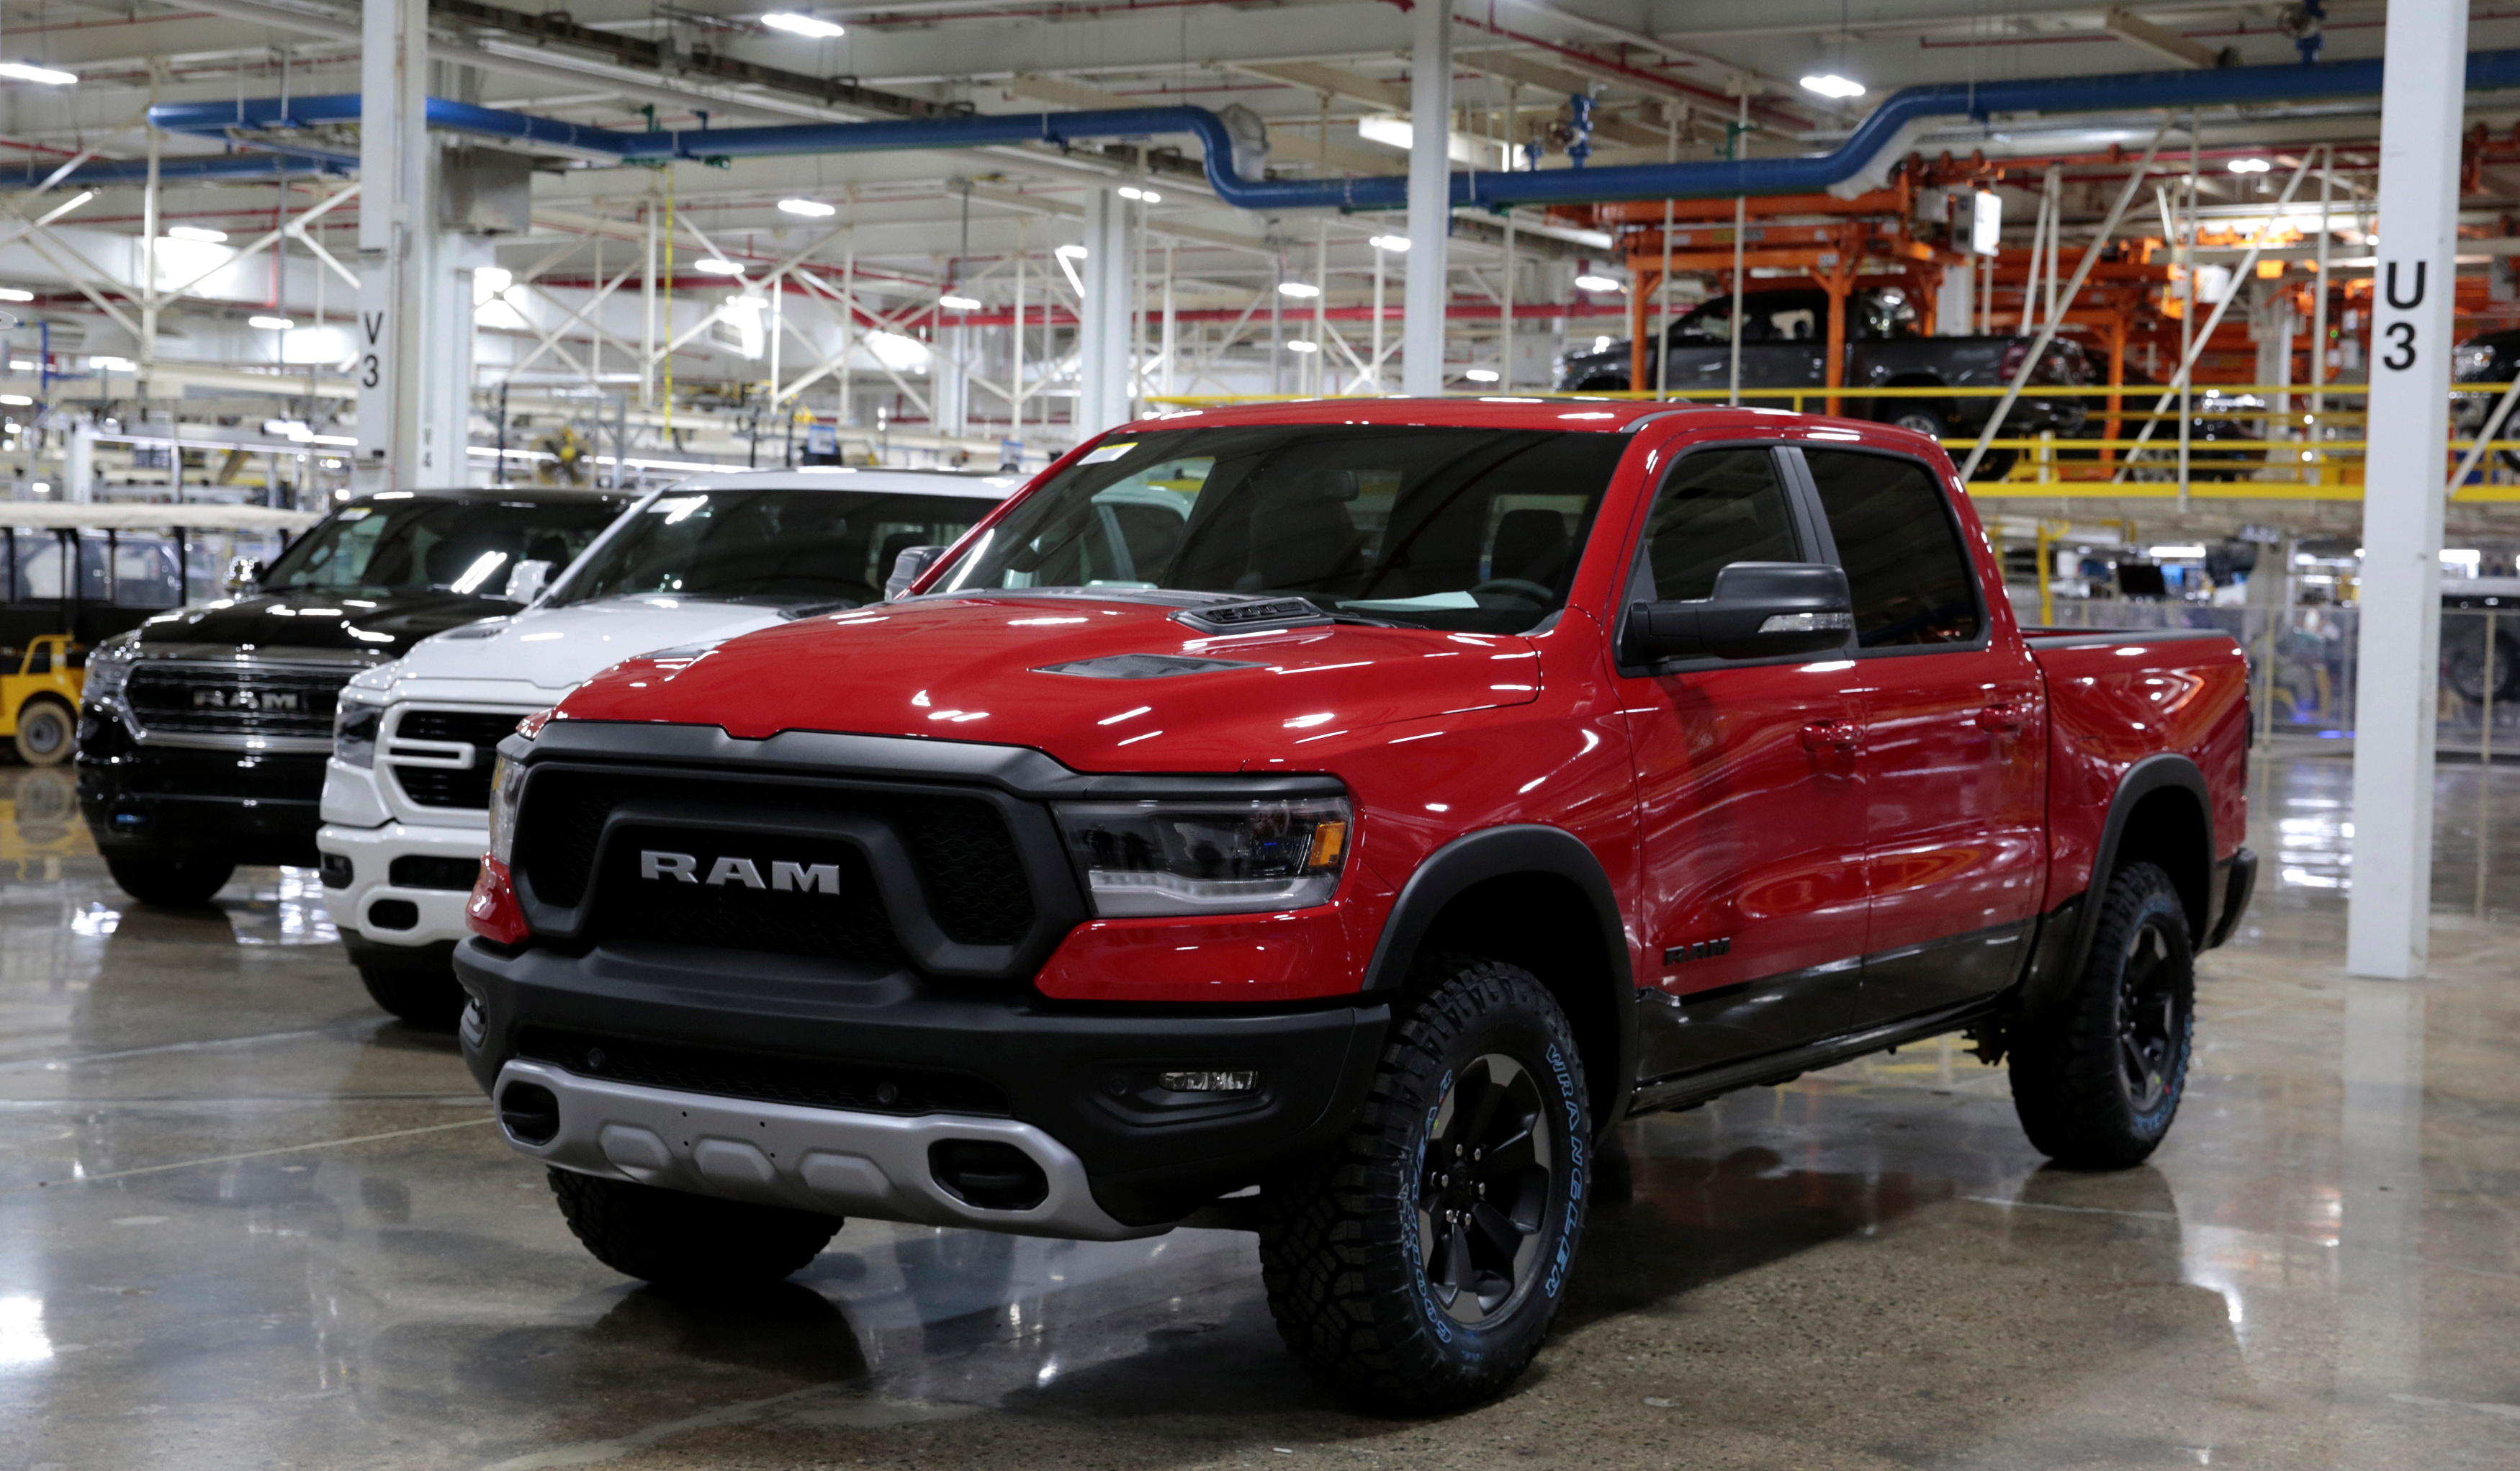 2019 Ram pickup trucks are on display at the FCA Sterling Heights Assembly Plant in Sterling Heights Michigan